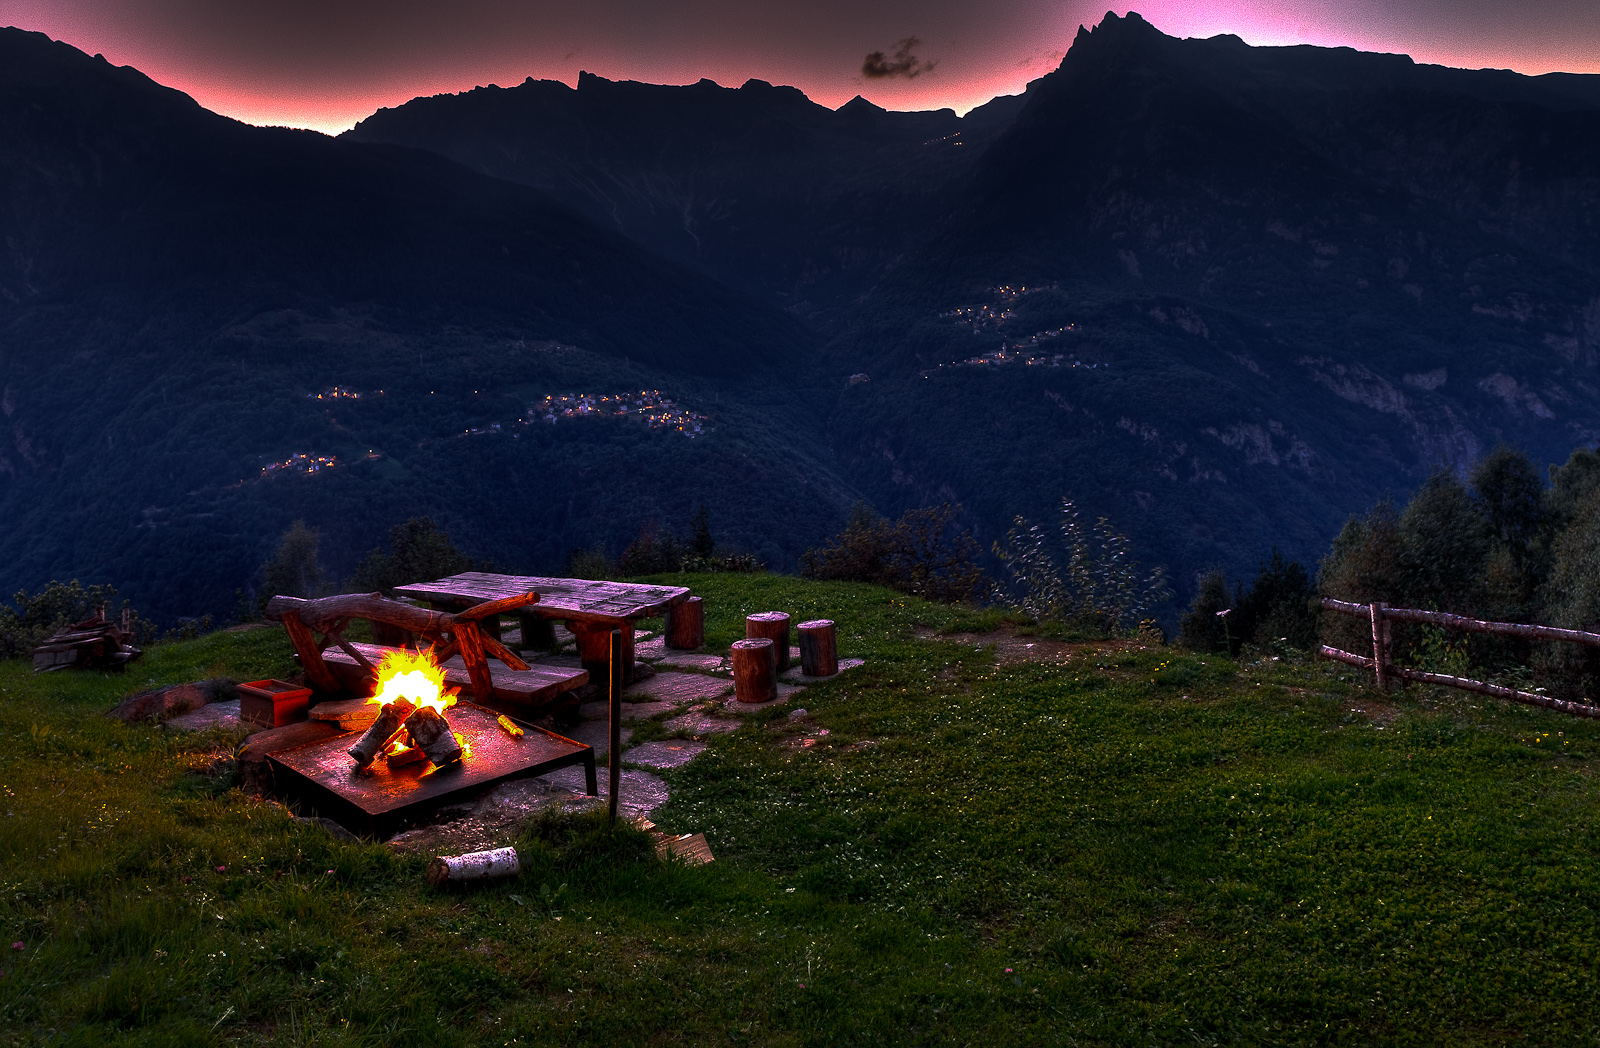 Our final dinner in Presalbert will be outside over a roaring fire, the mountains as our backdrop, cooked by Curtis Duffy